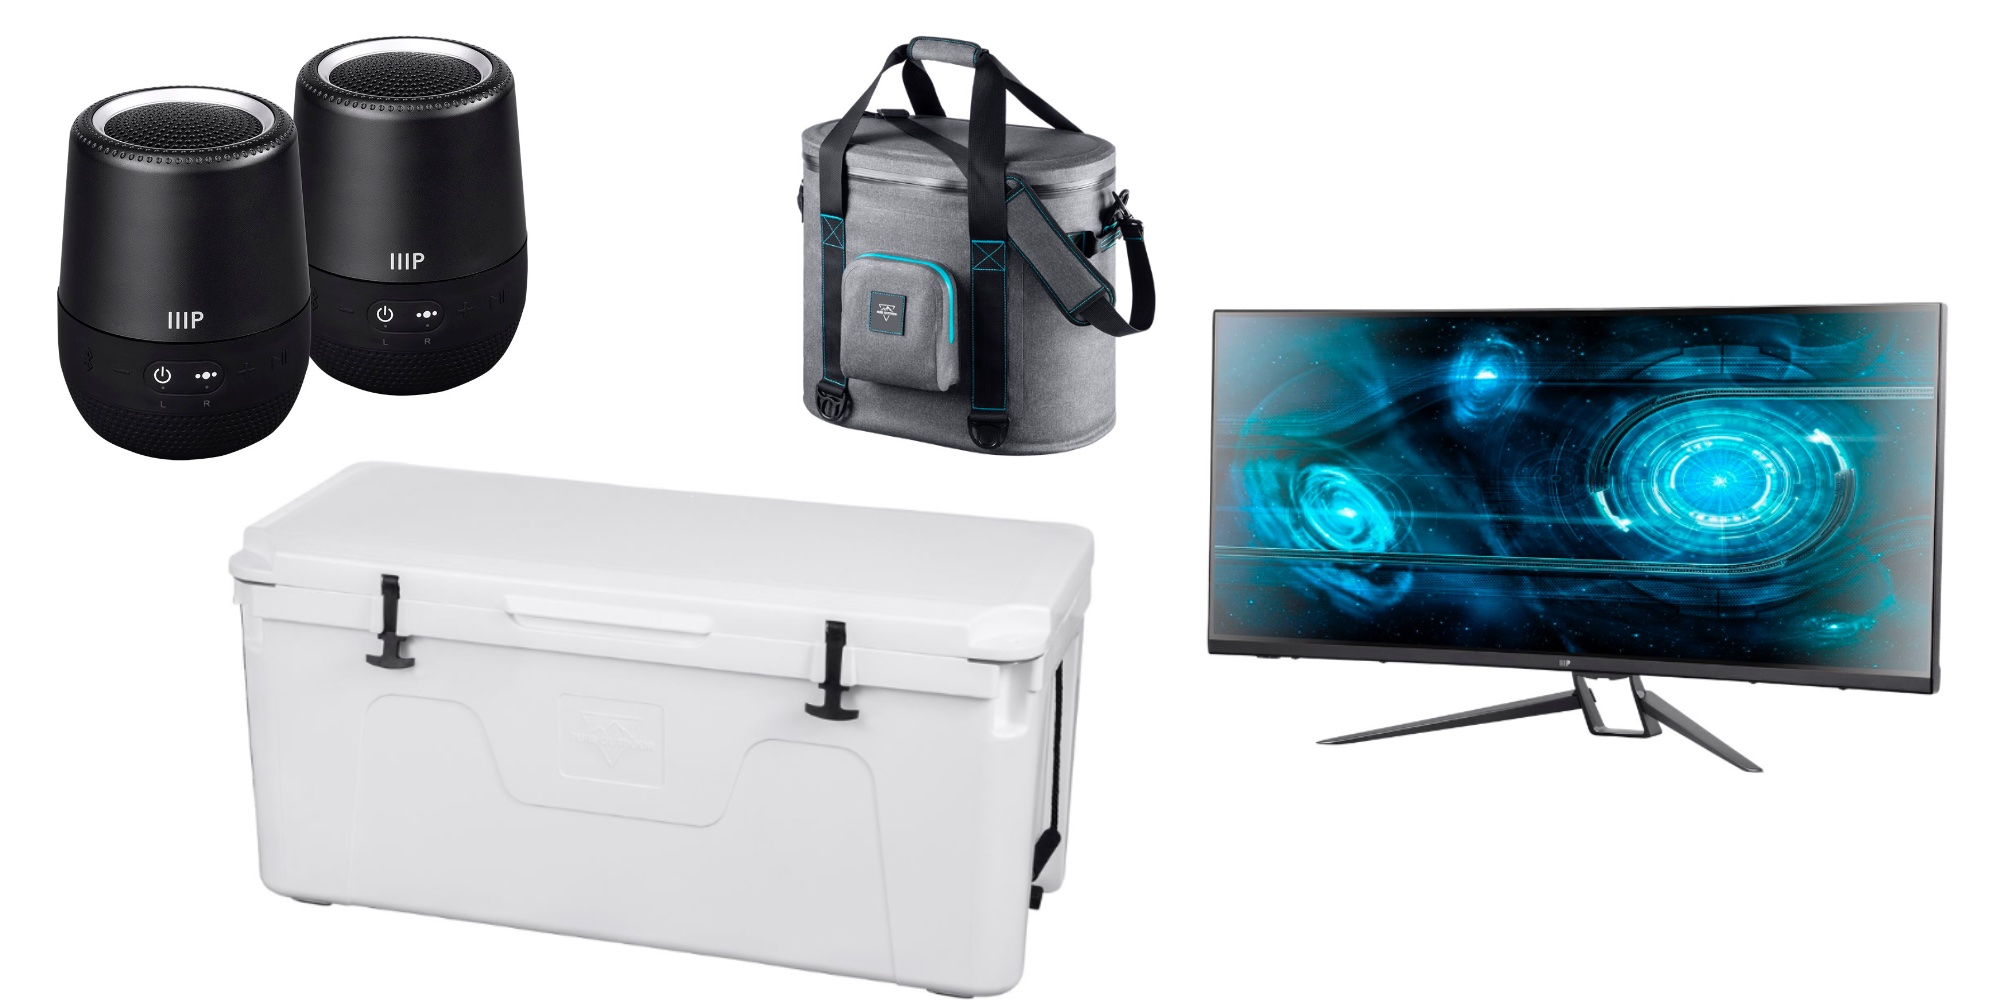 Take up to 55% off speakers, outdoor gear and more in Monoprice's Memorial Day sale